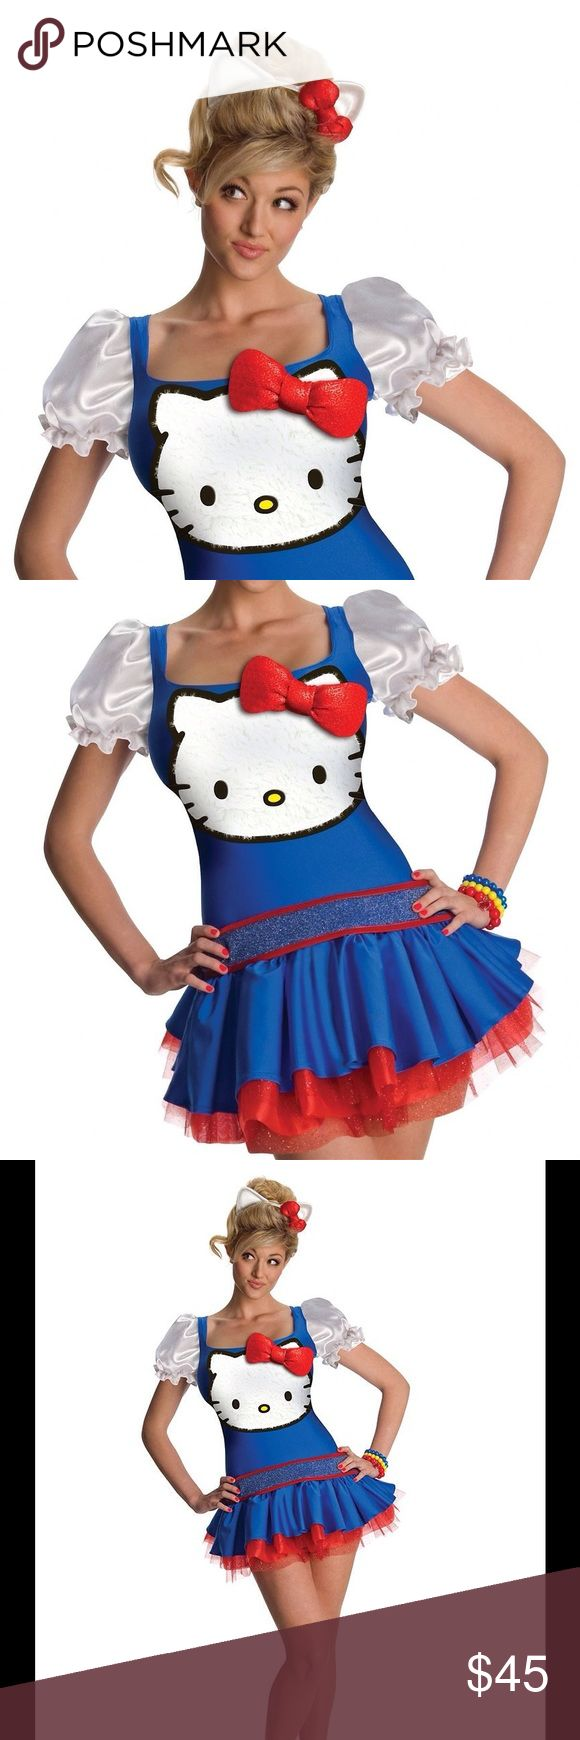 Costume Hello Kitty Halloween Fancy Dress Size- S New Hello Kitty Blue Classic Costume Hello Kitty Halloween Fancy Dress Size- SmallThis is a Size Small   Hello Kitty Blue Classic Costume This Hello Kitty costume for women includes a dress and headpiece. This Hello Kitty Blue Classic in adult Size Small. This Hello Kitty Blue Classic is an officially licensed Hello Kitty costume. The red petticoat is sold separately from this cute Hello Kitty costume. Other